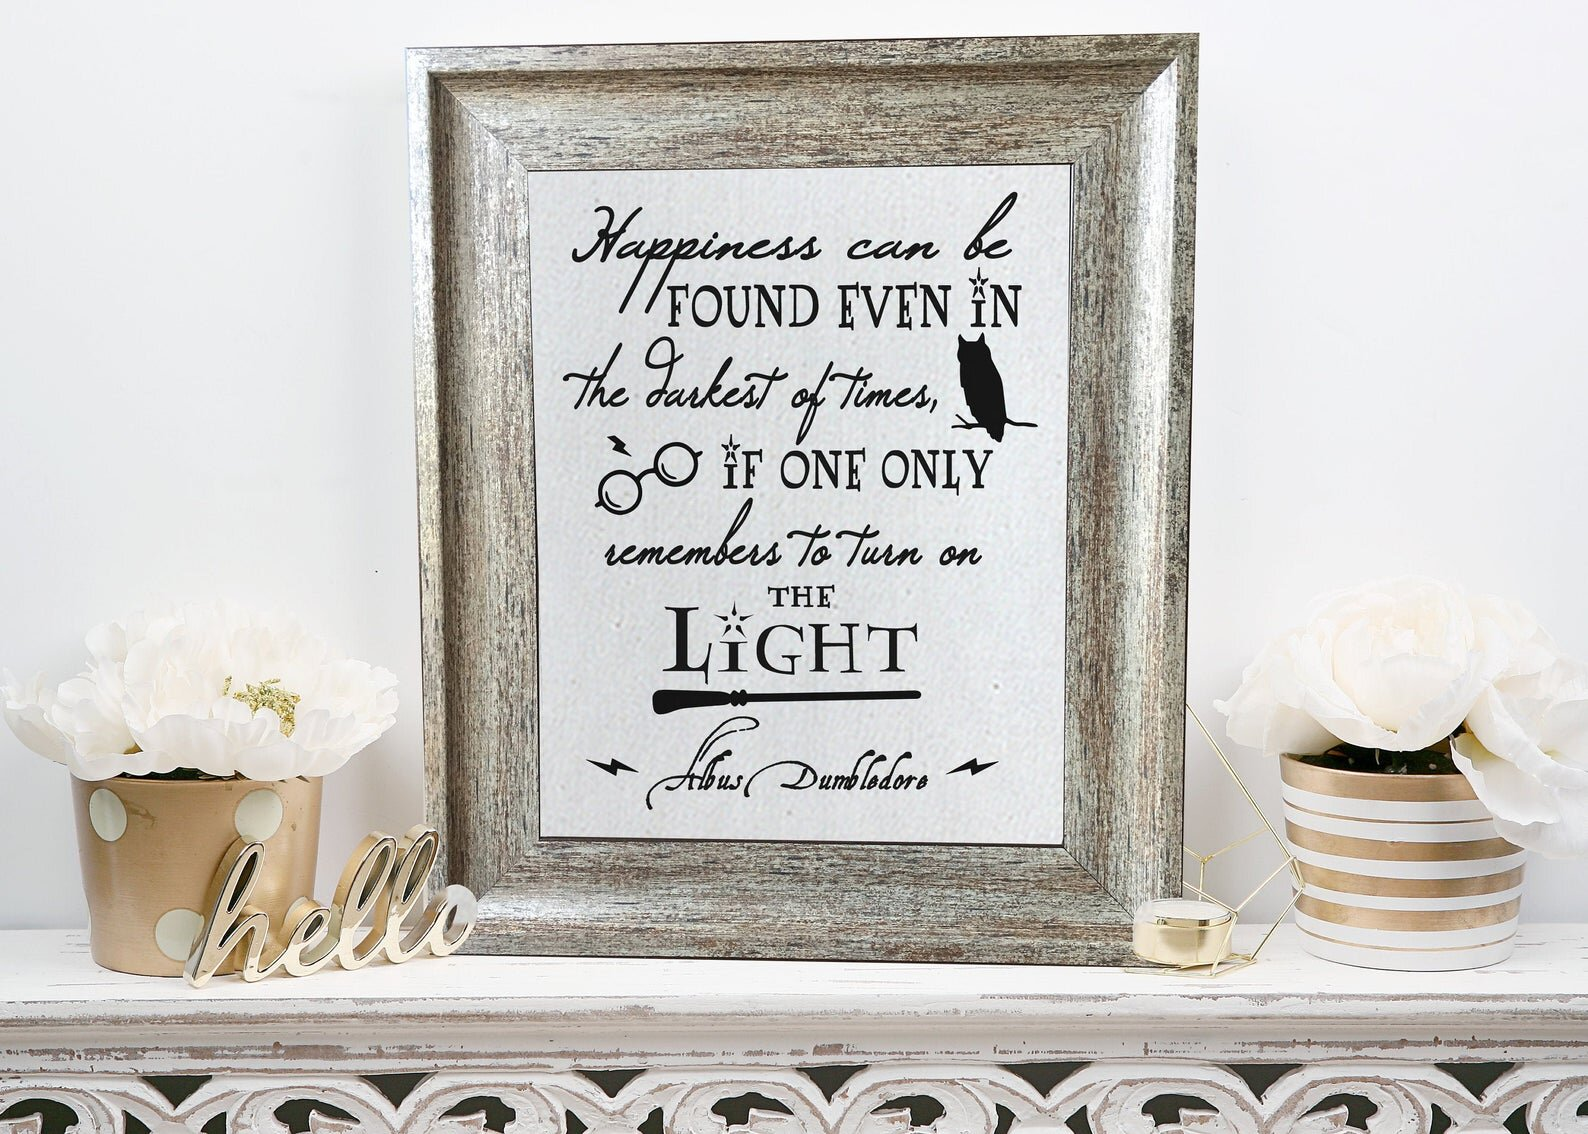 Source: My Prints Charming Shop on Etsy